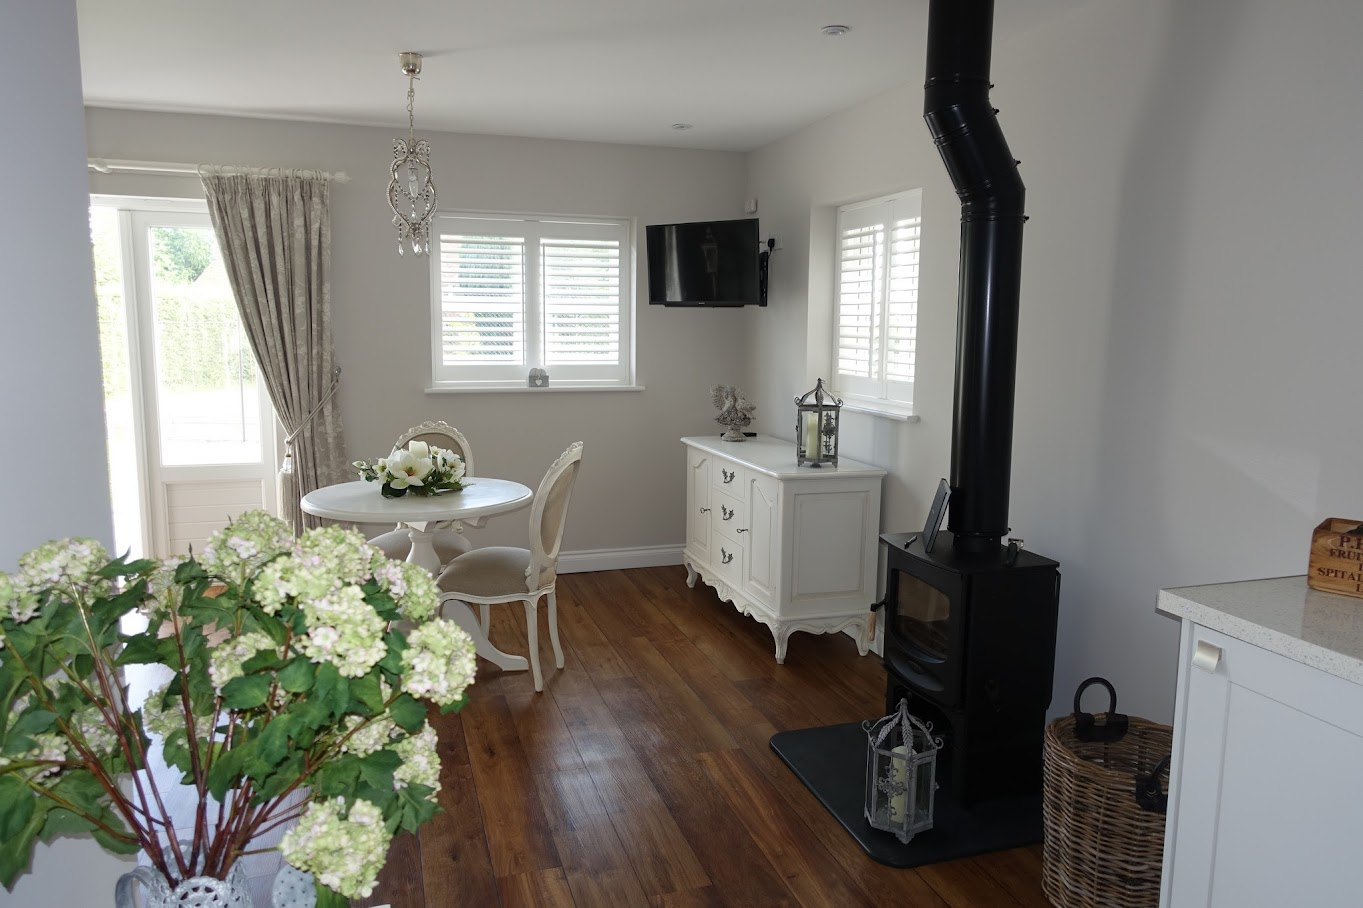 Photos Brunger Bed & Breakfast and the Pavilion self catering cottage in Tenterden